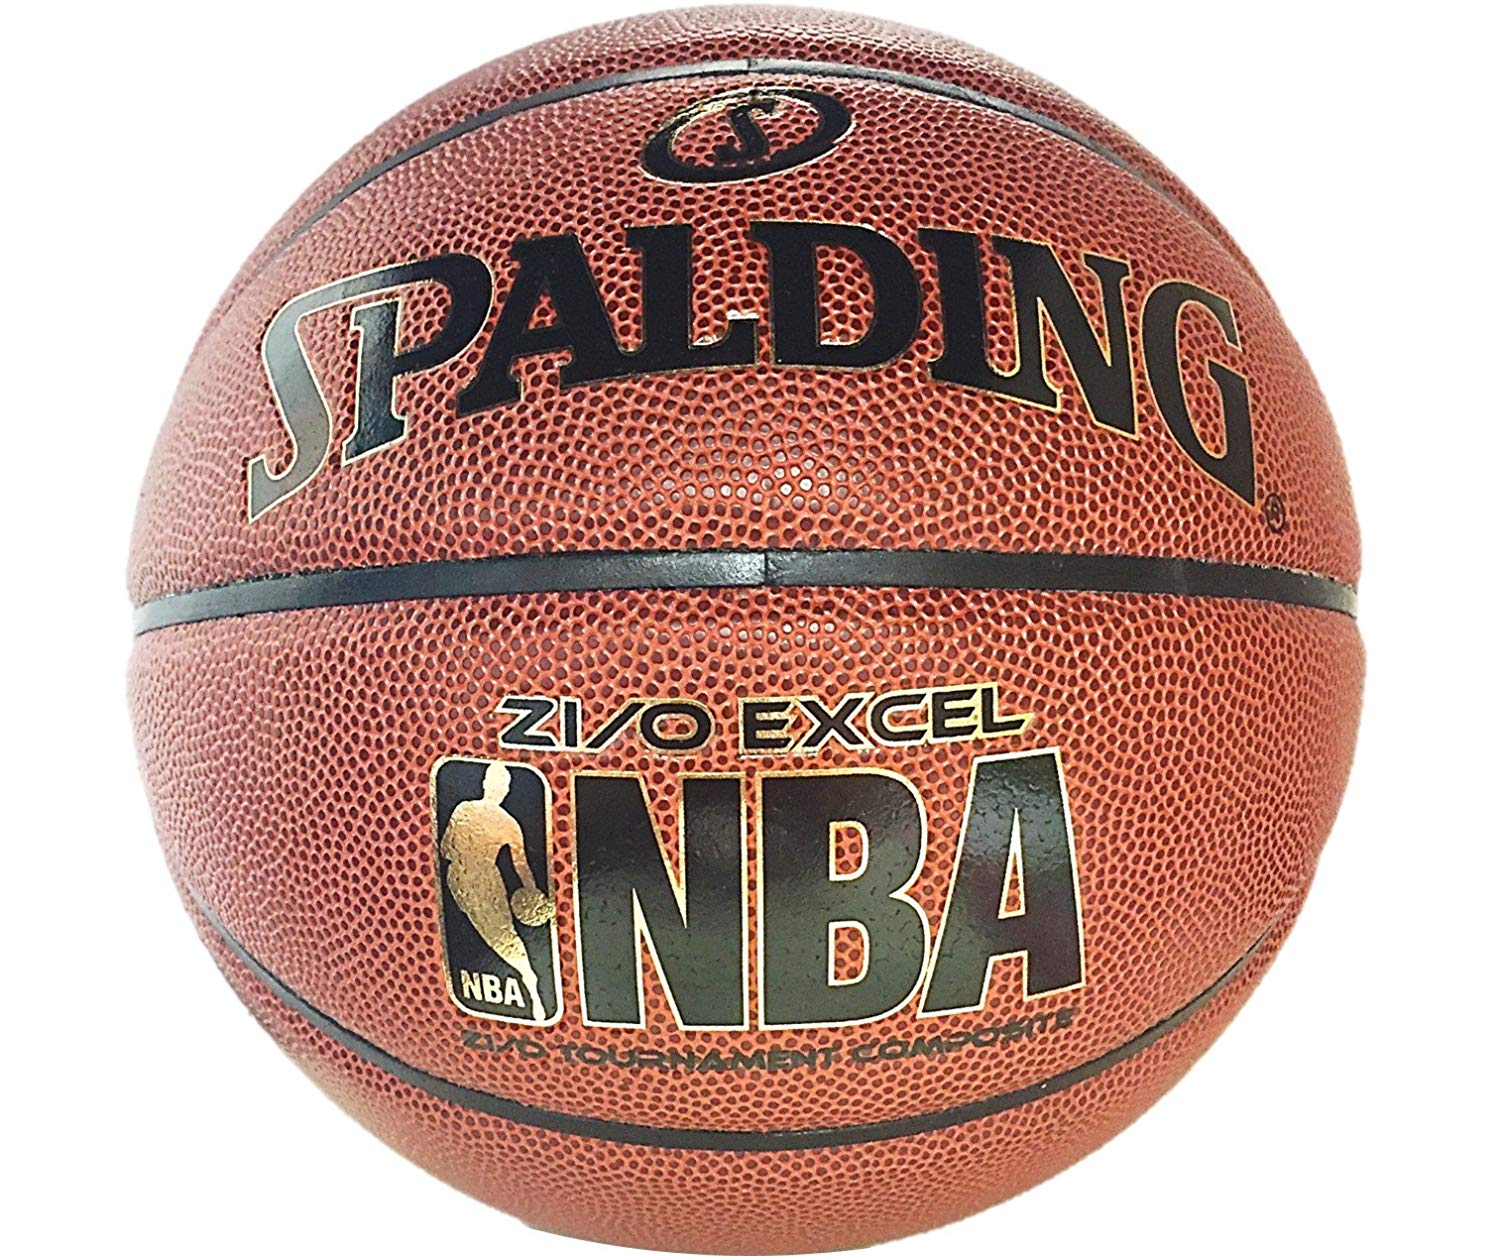 Spalding NBA Zi/O Excel Tournament Basketball 29.5""